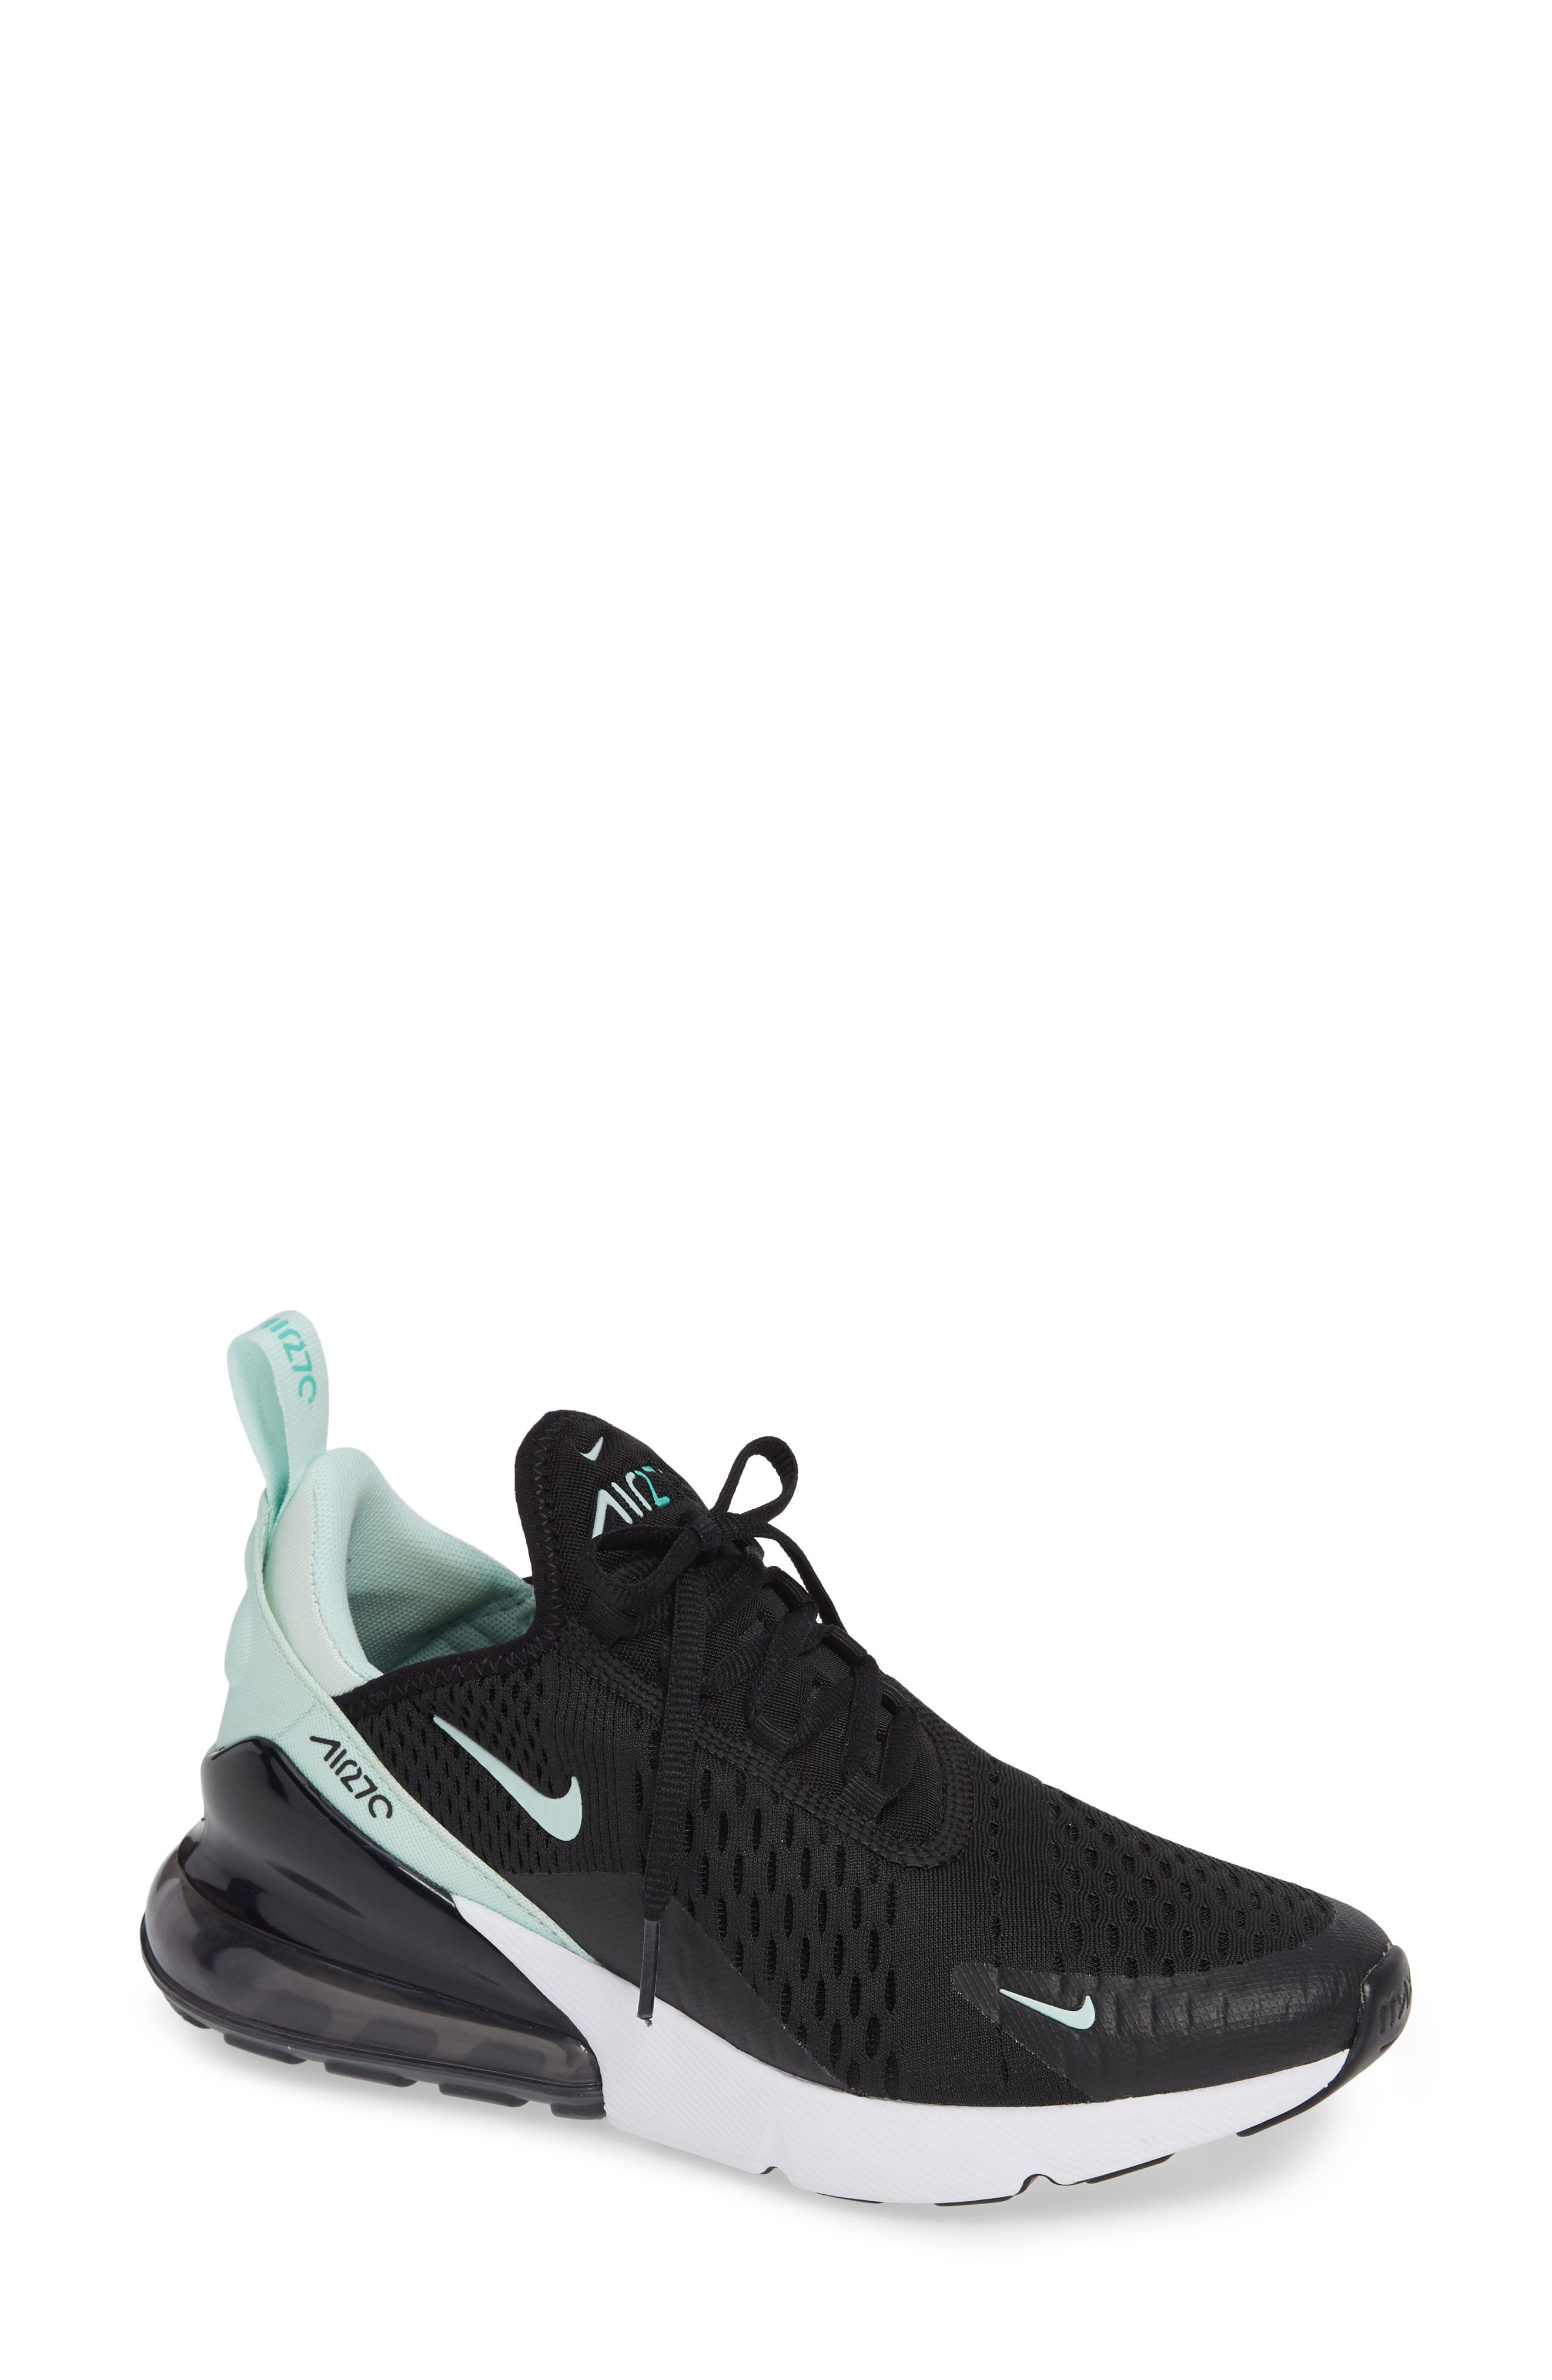 Air Max 270 Premium Sneaker,                             Main thumbnail 1, color,                             BLACK/ IGLOO TURQUOISE WHITE